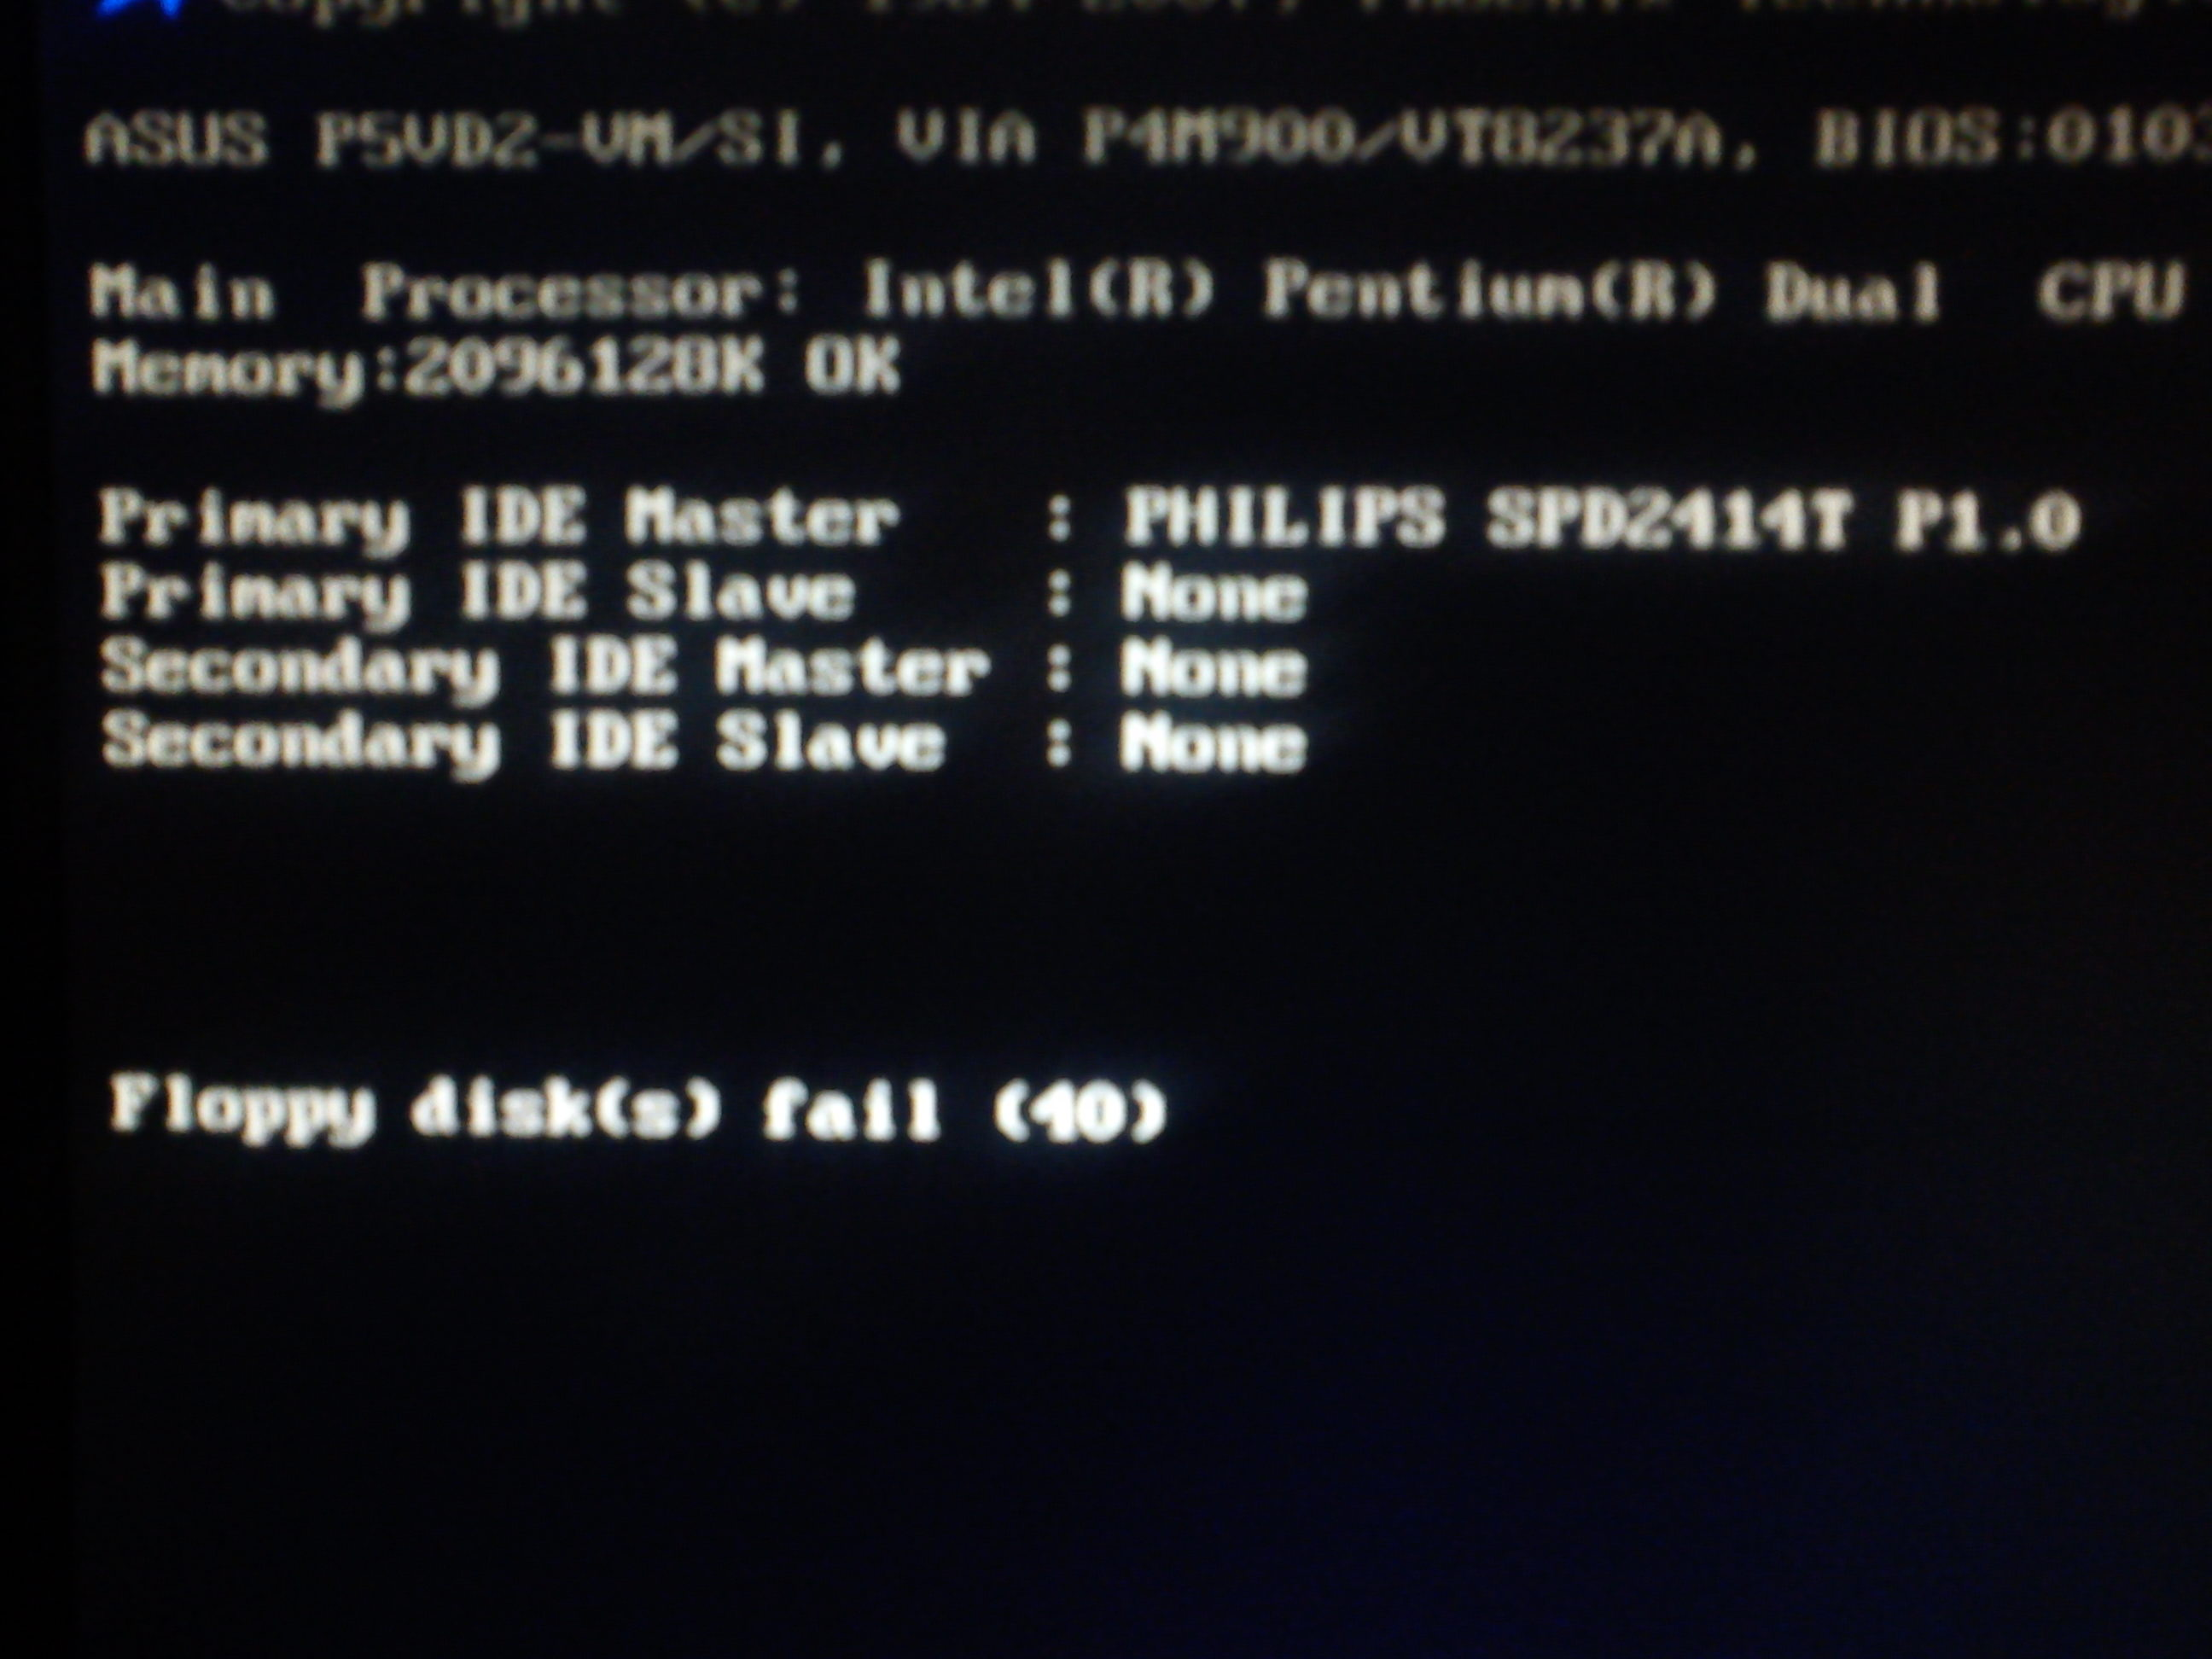 PC - Wywala Floppy disc(s) fail (40), system nie startuje.